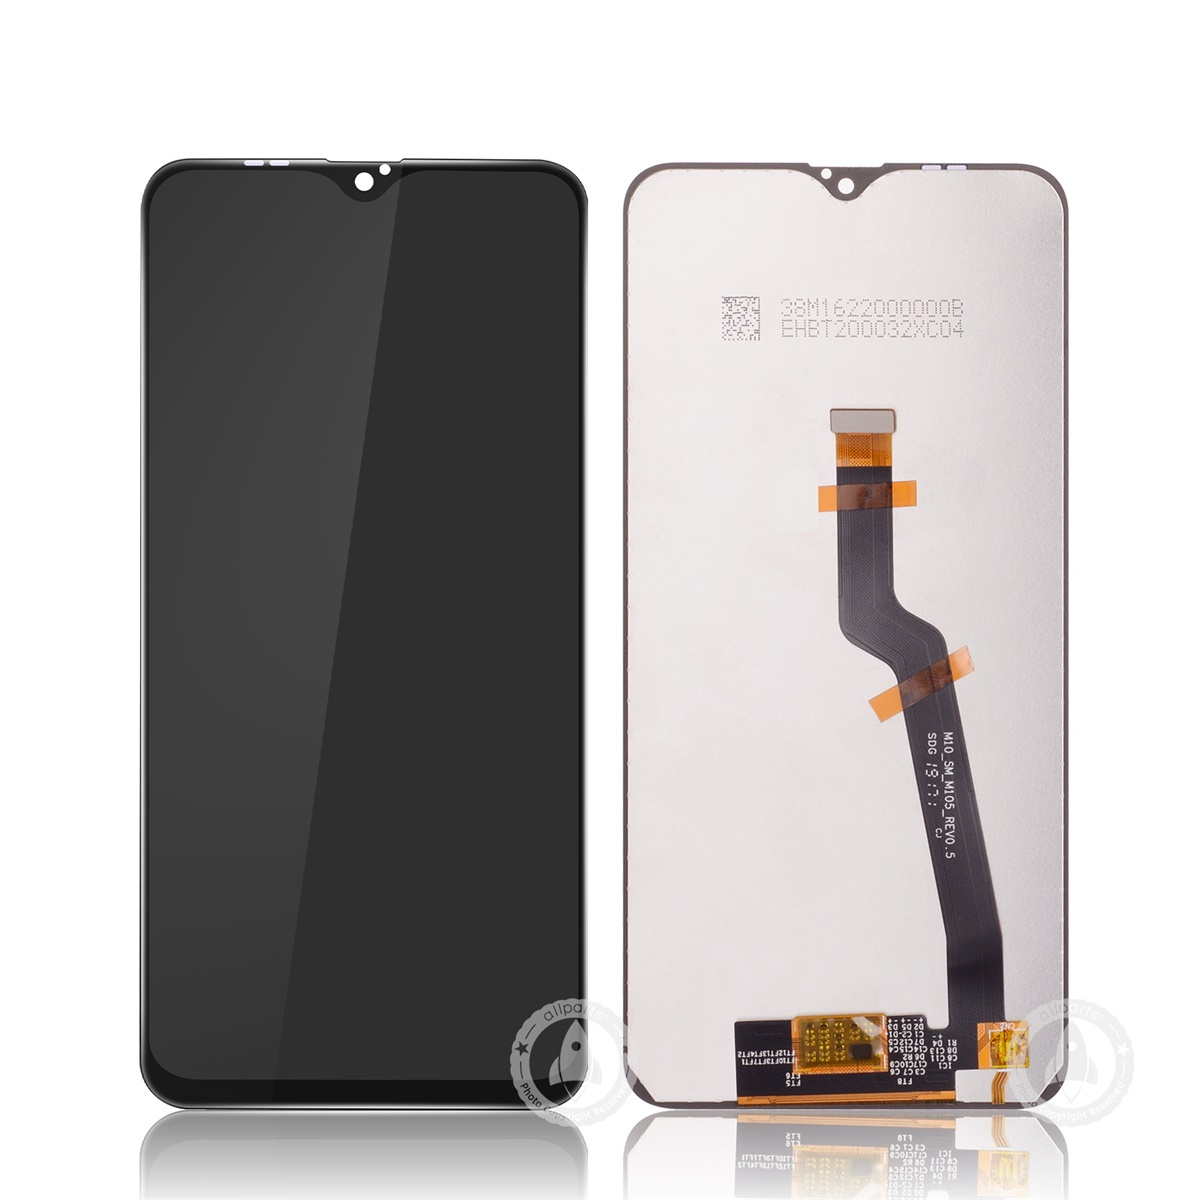 FoxFix For <font><b>SAMSUNG</b></font> GALAXY <font><b>M10</b></font> <font><b>LCD</b></font> Display Touch <font><b>Screen</b></font> Assembly M105 M105F SM-M105F/DS Replacement For <font><b>SAMSUNG</b></font> <font><b>M10</b></font> <font><b>LCD</b></font> image